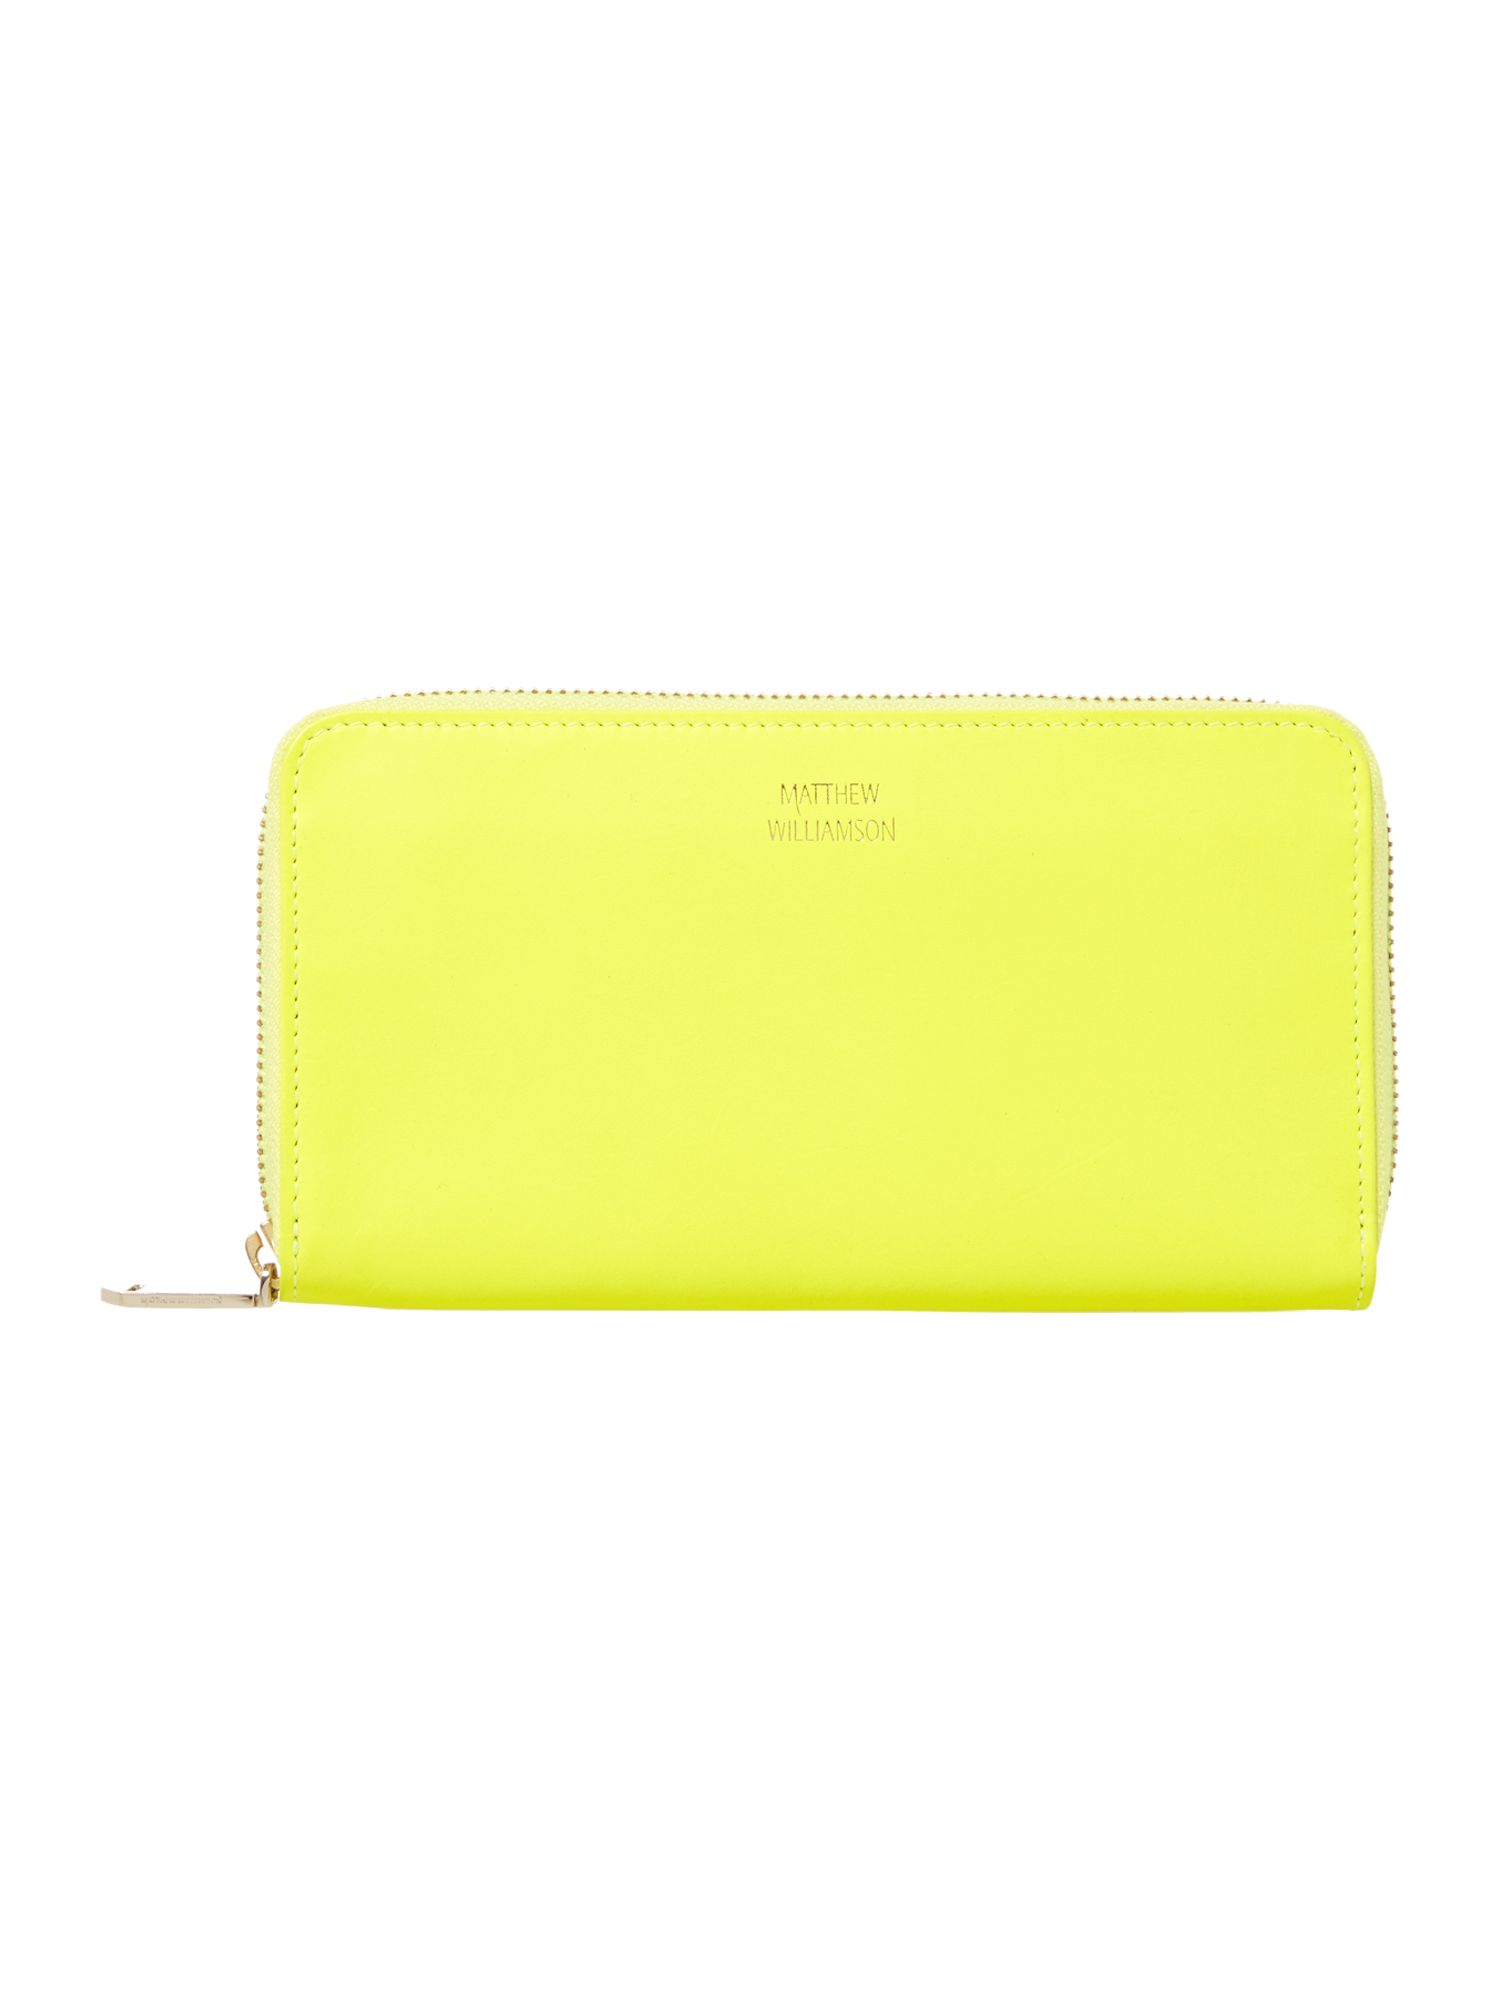 Nomad large yellow zip around purse